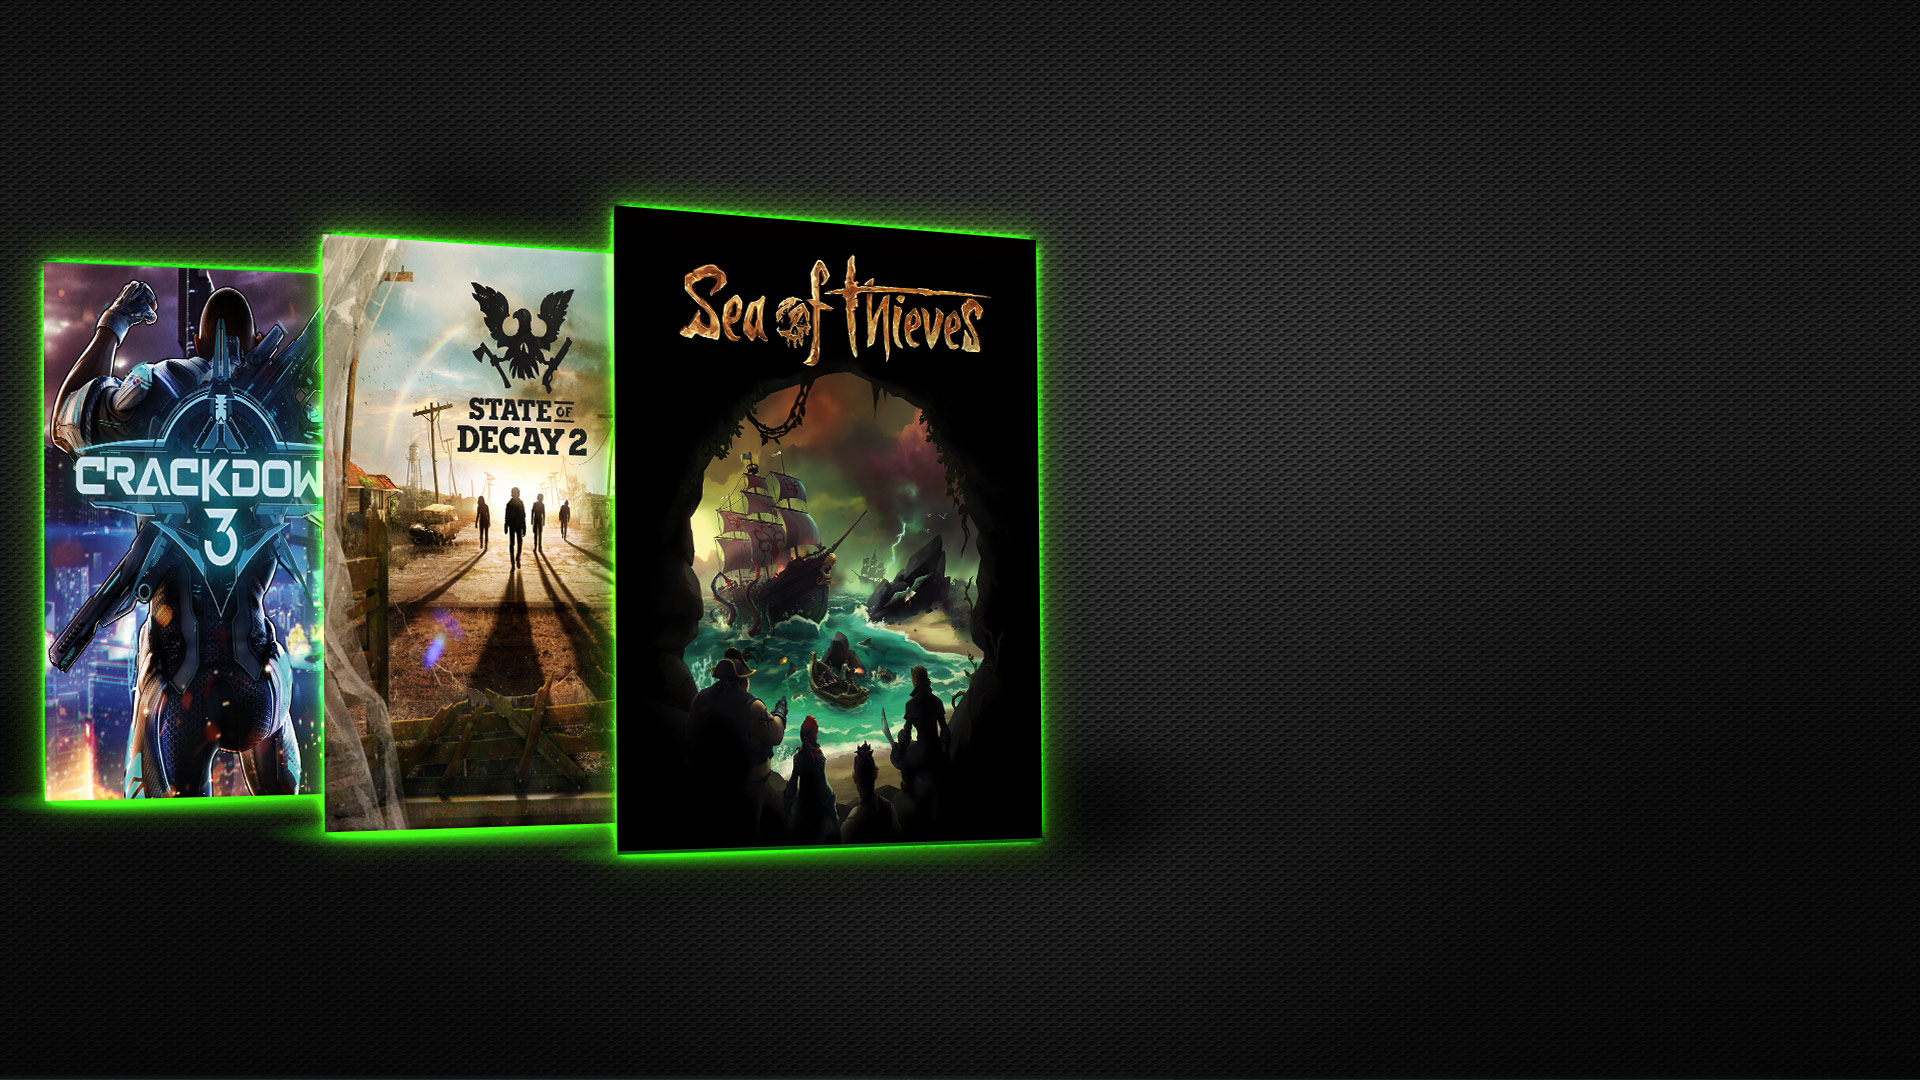 Three Xbox games in a row: Sea of Thieves, State of Decay 2, and Crackdown 3